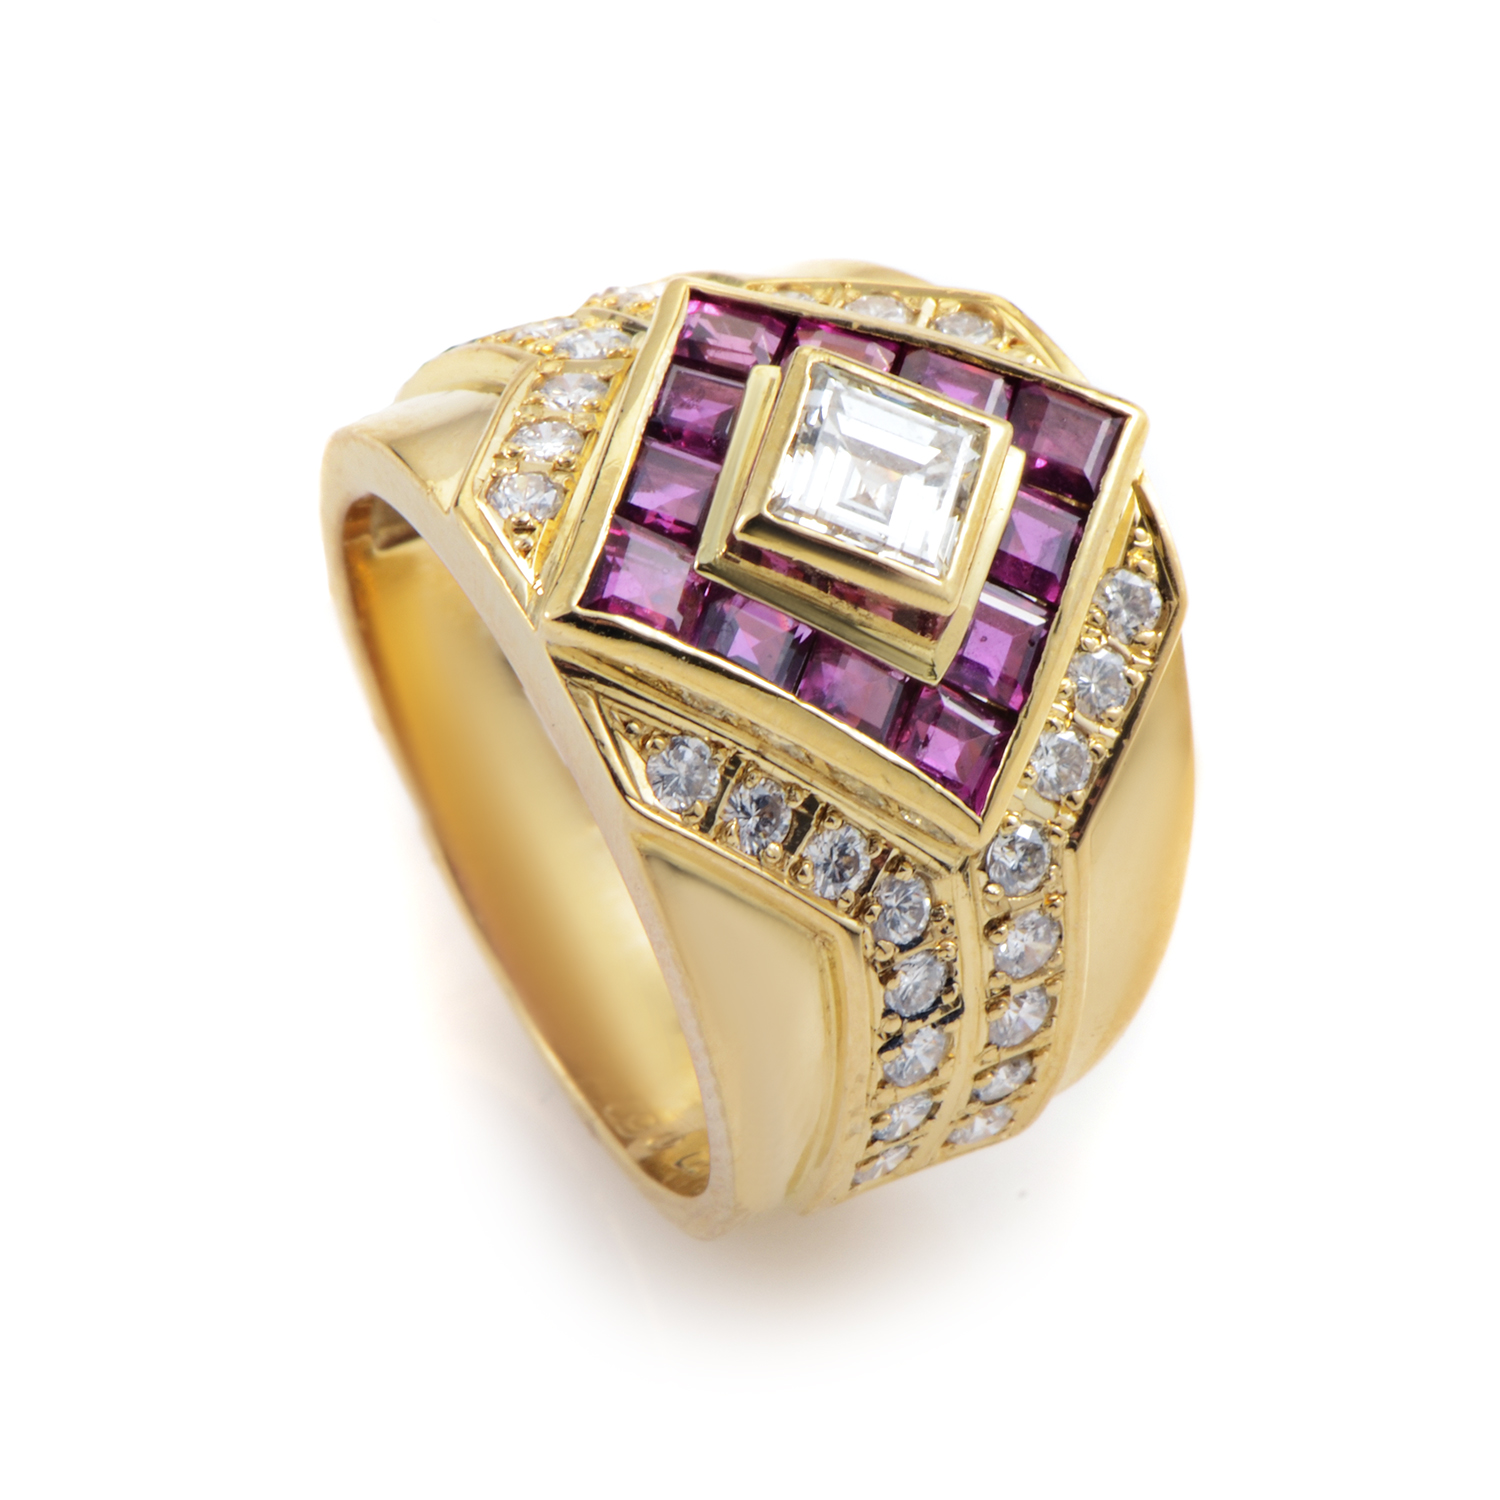 18K Yellow Gold Diamond & Ruby Ring MFC05-020916